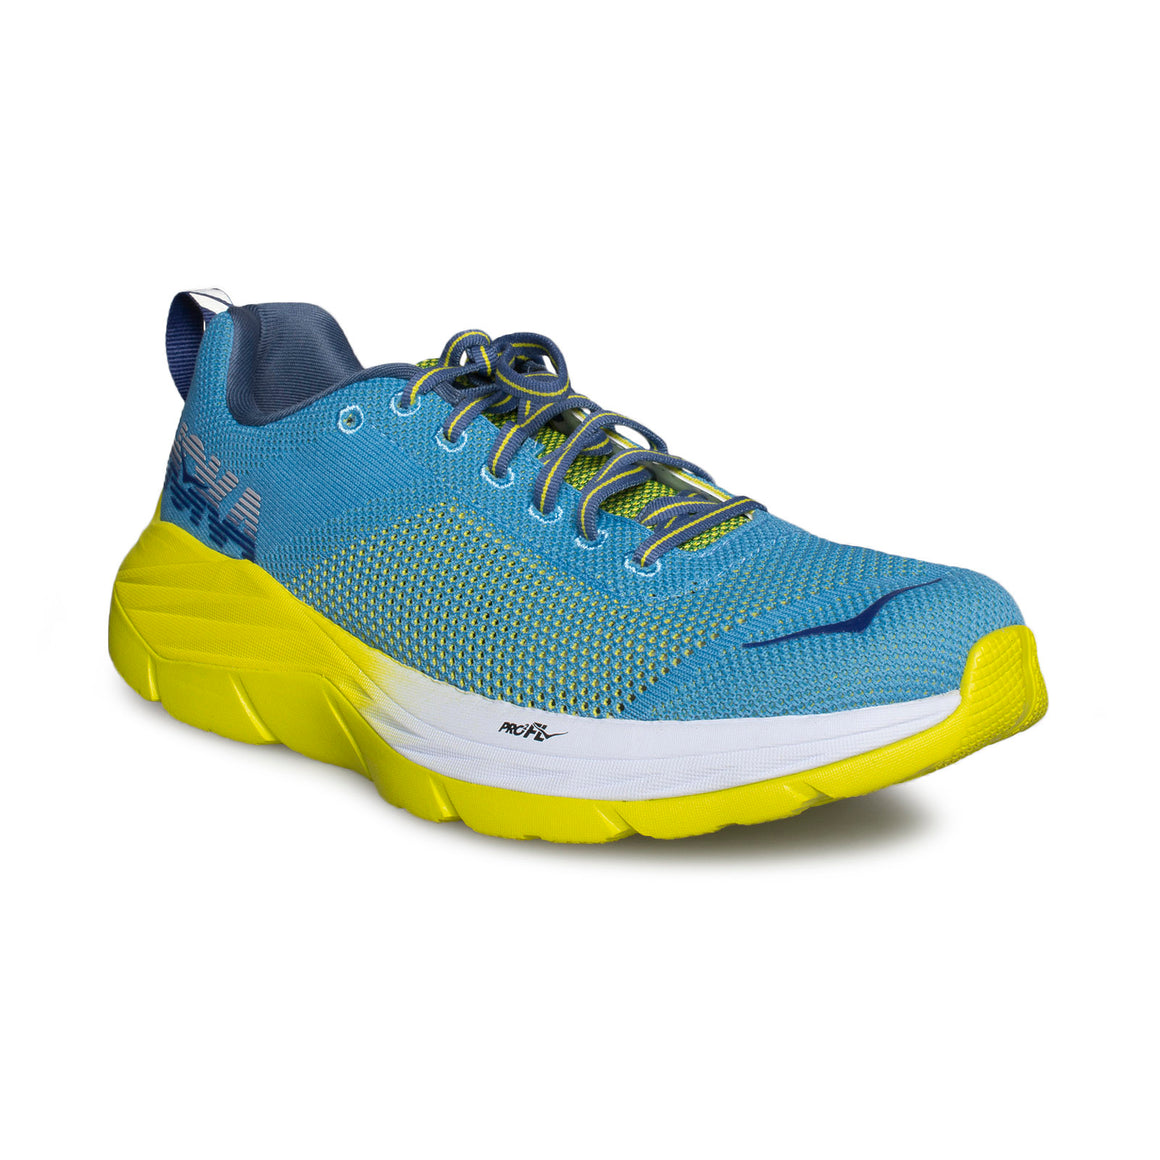 Hoka Mach Niagara / Sulpher Spring Running Shoes - Men's